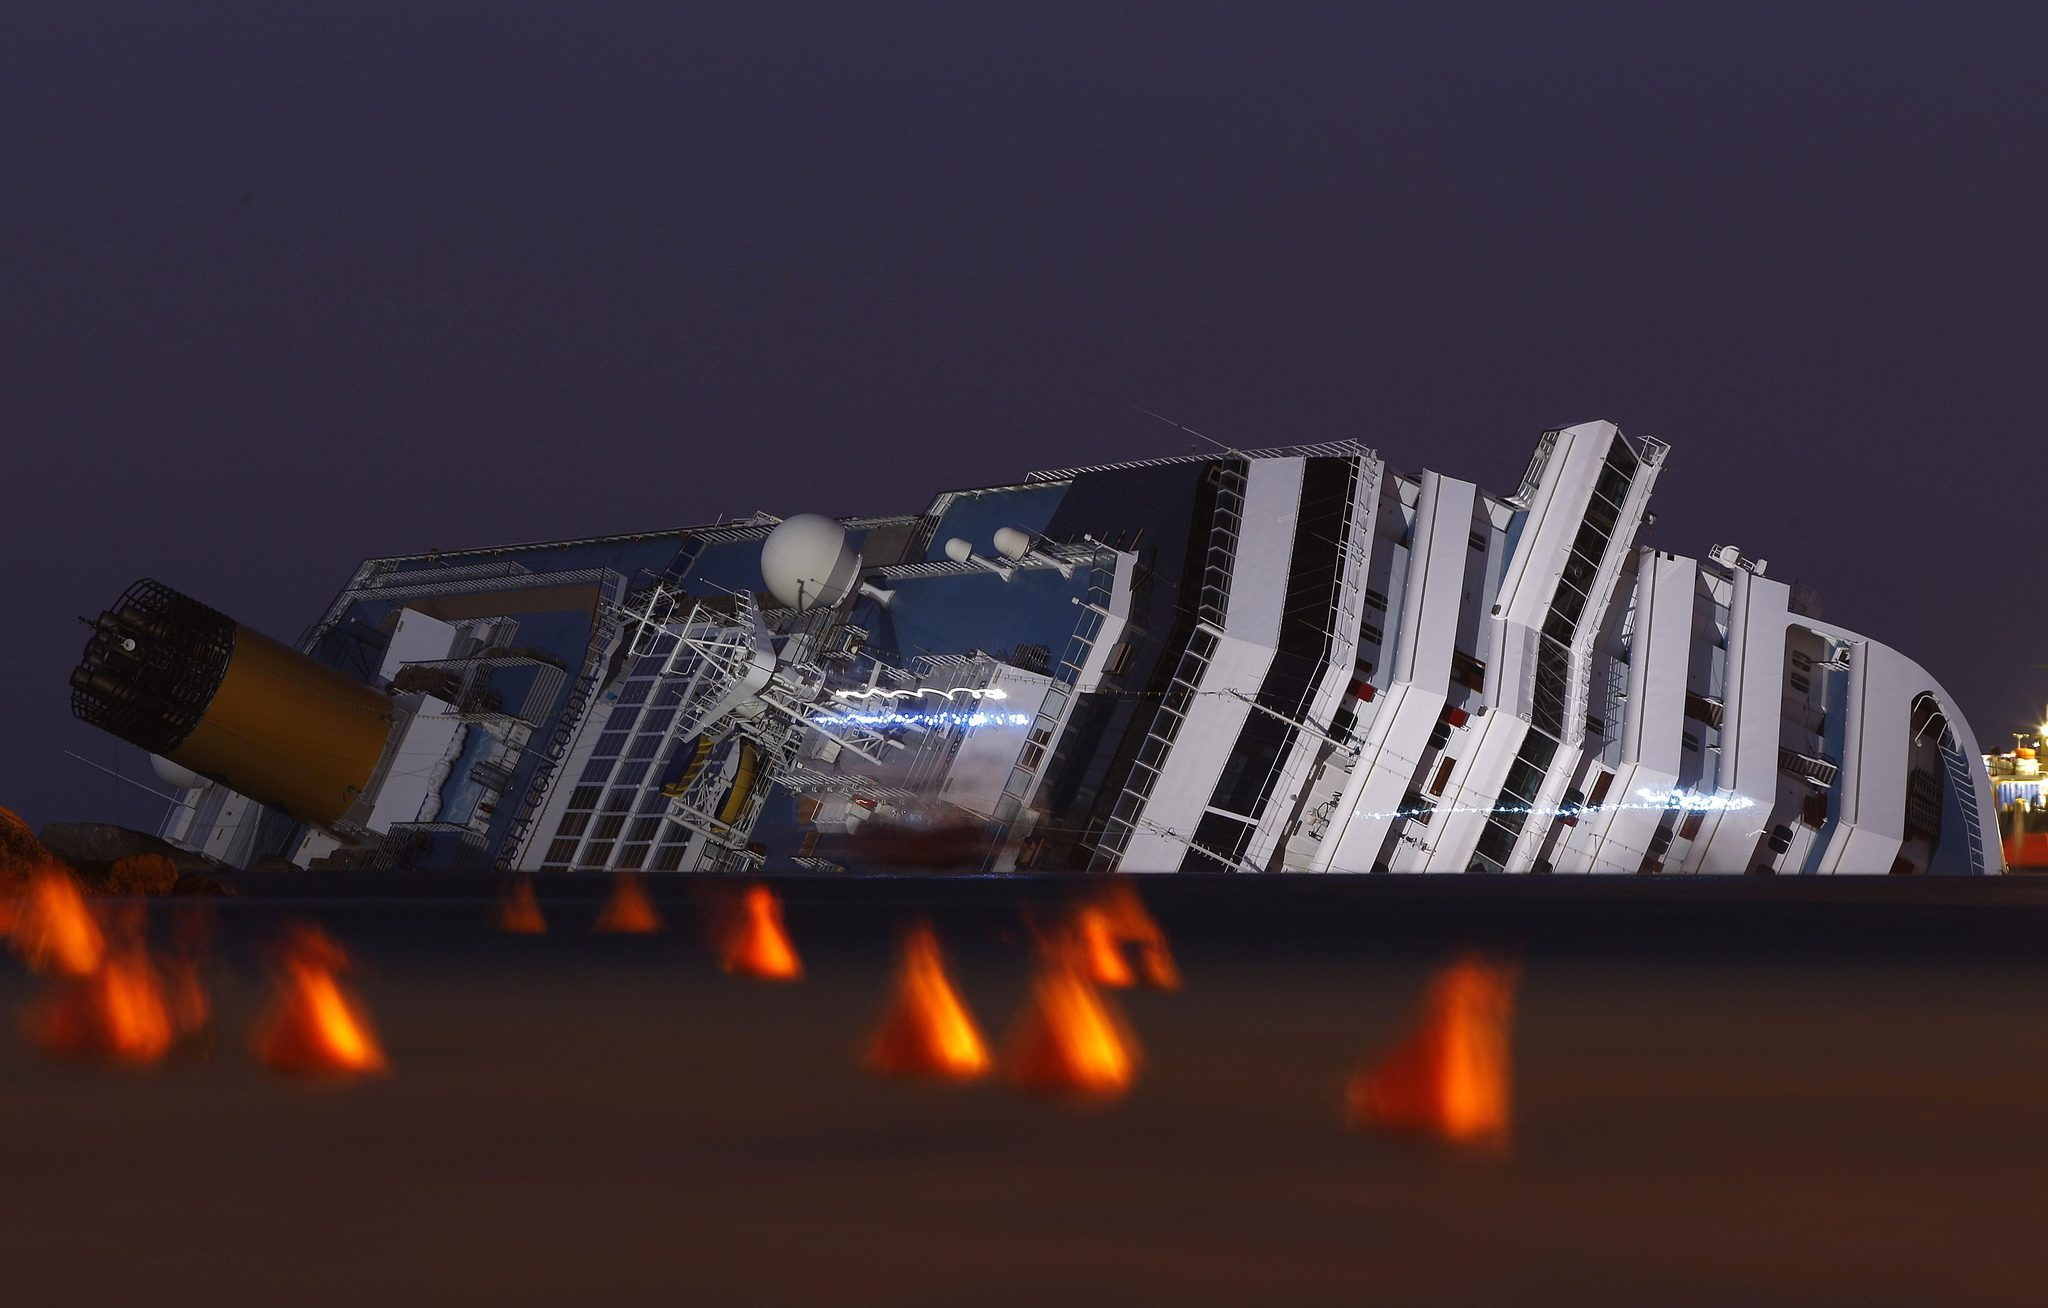 The Costa Concordia cruise ship which ran aground off the west coast of Italy at Giglio island lies on its side, half-submerged and threatening to slide into deeper waters.